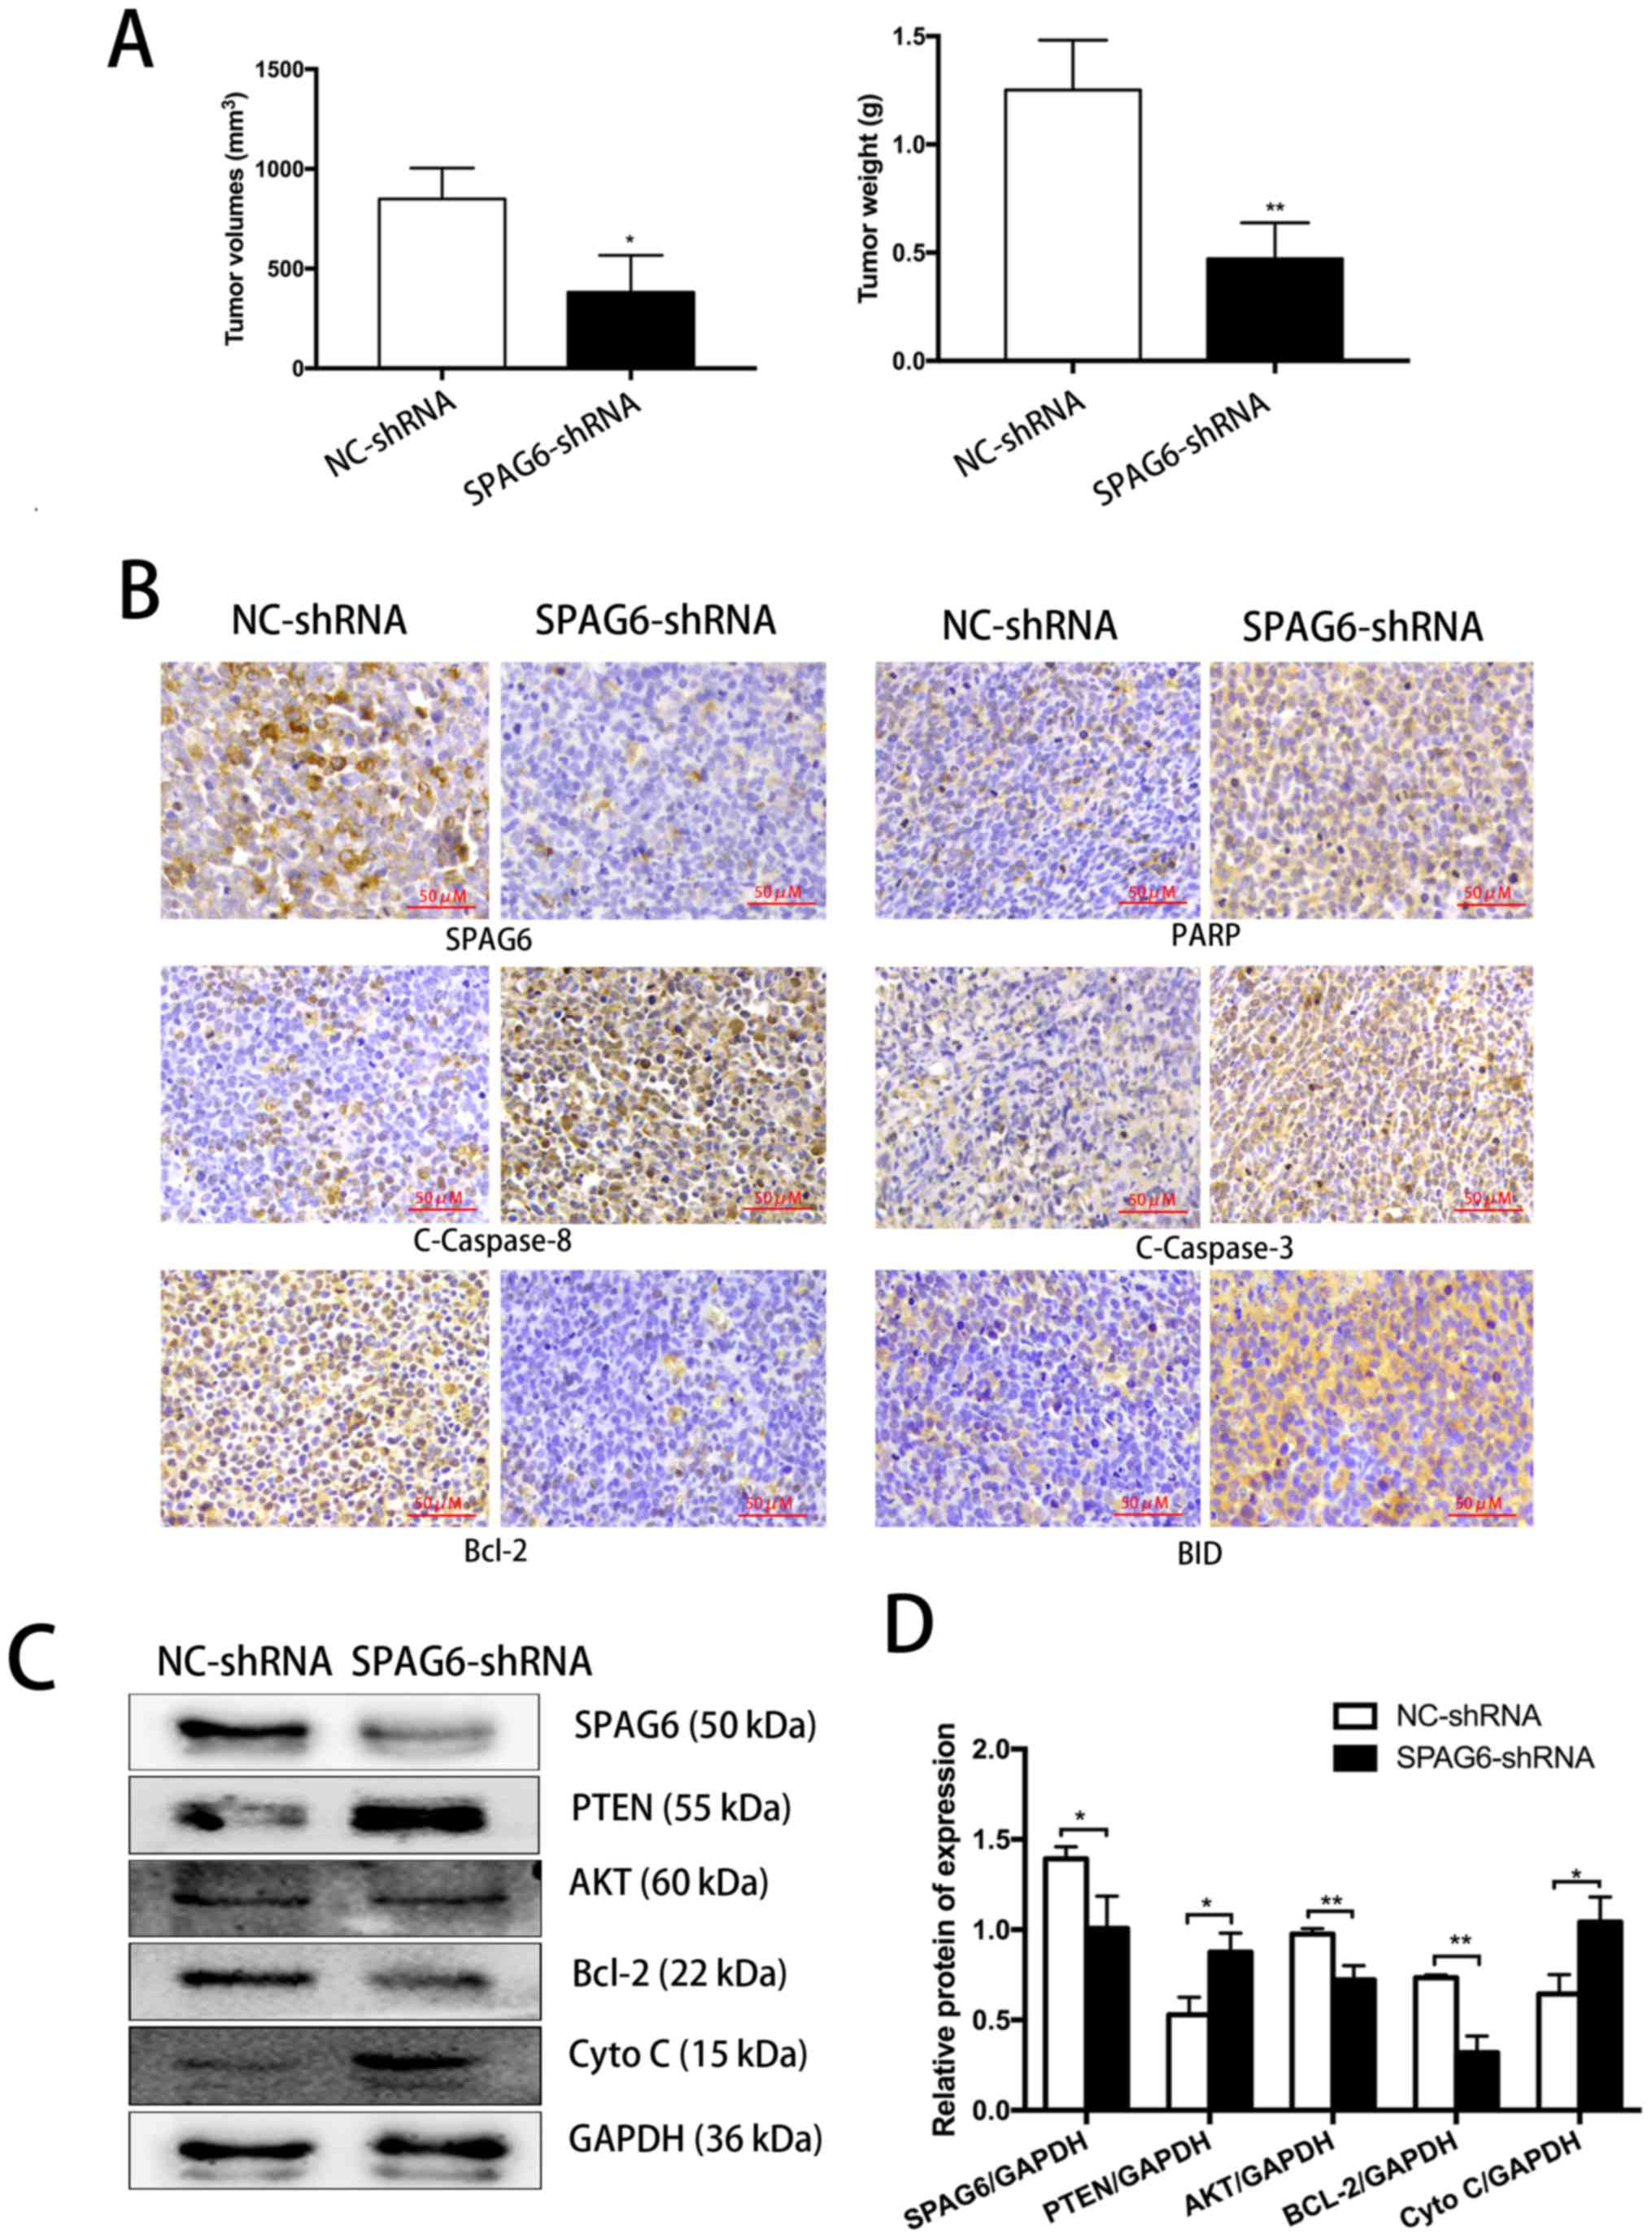 SPAG6 silencing induces apoptosis in the myelodysplastic